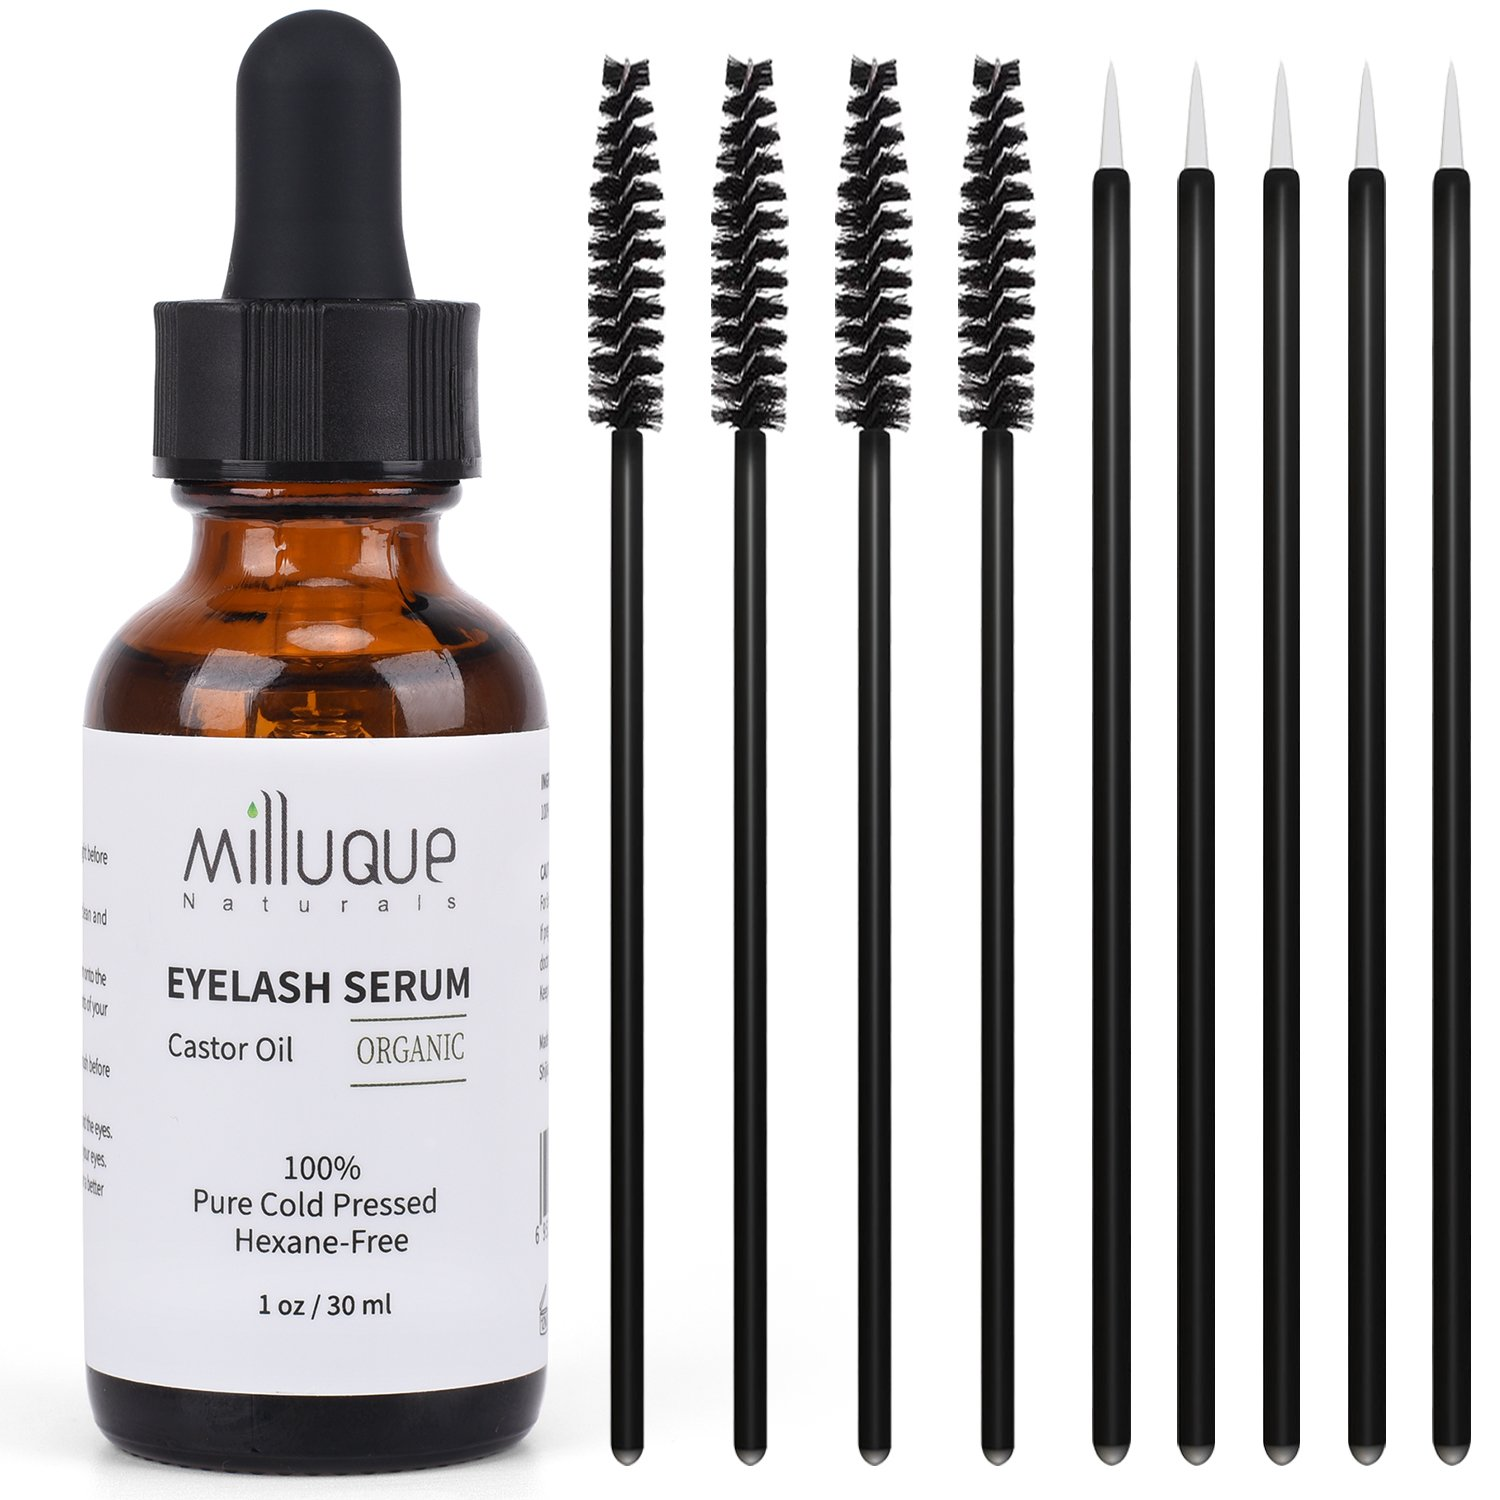 2a3fcf36e87 Amazon.com: Castor Oil for Eyelashes and Eyebrows, 100% Pure, Organic and Cold  Pressed, Promote Natural Growth for Lash and Brows, with Treatment  Applicator ...